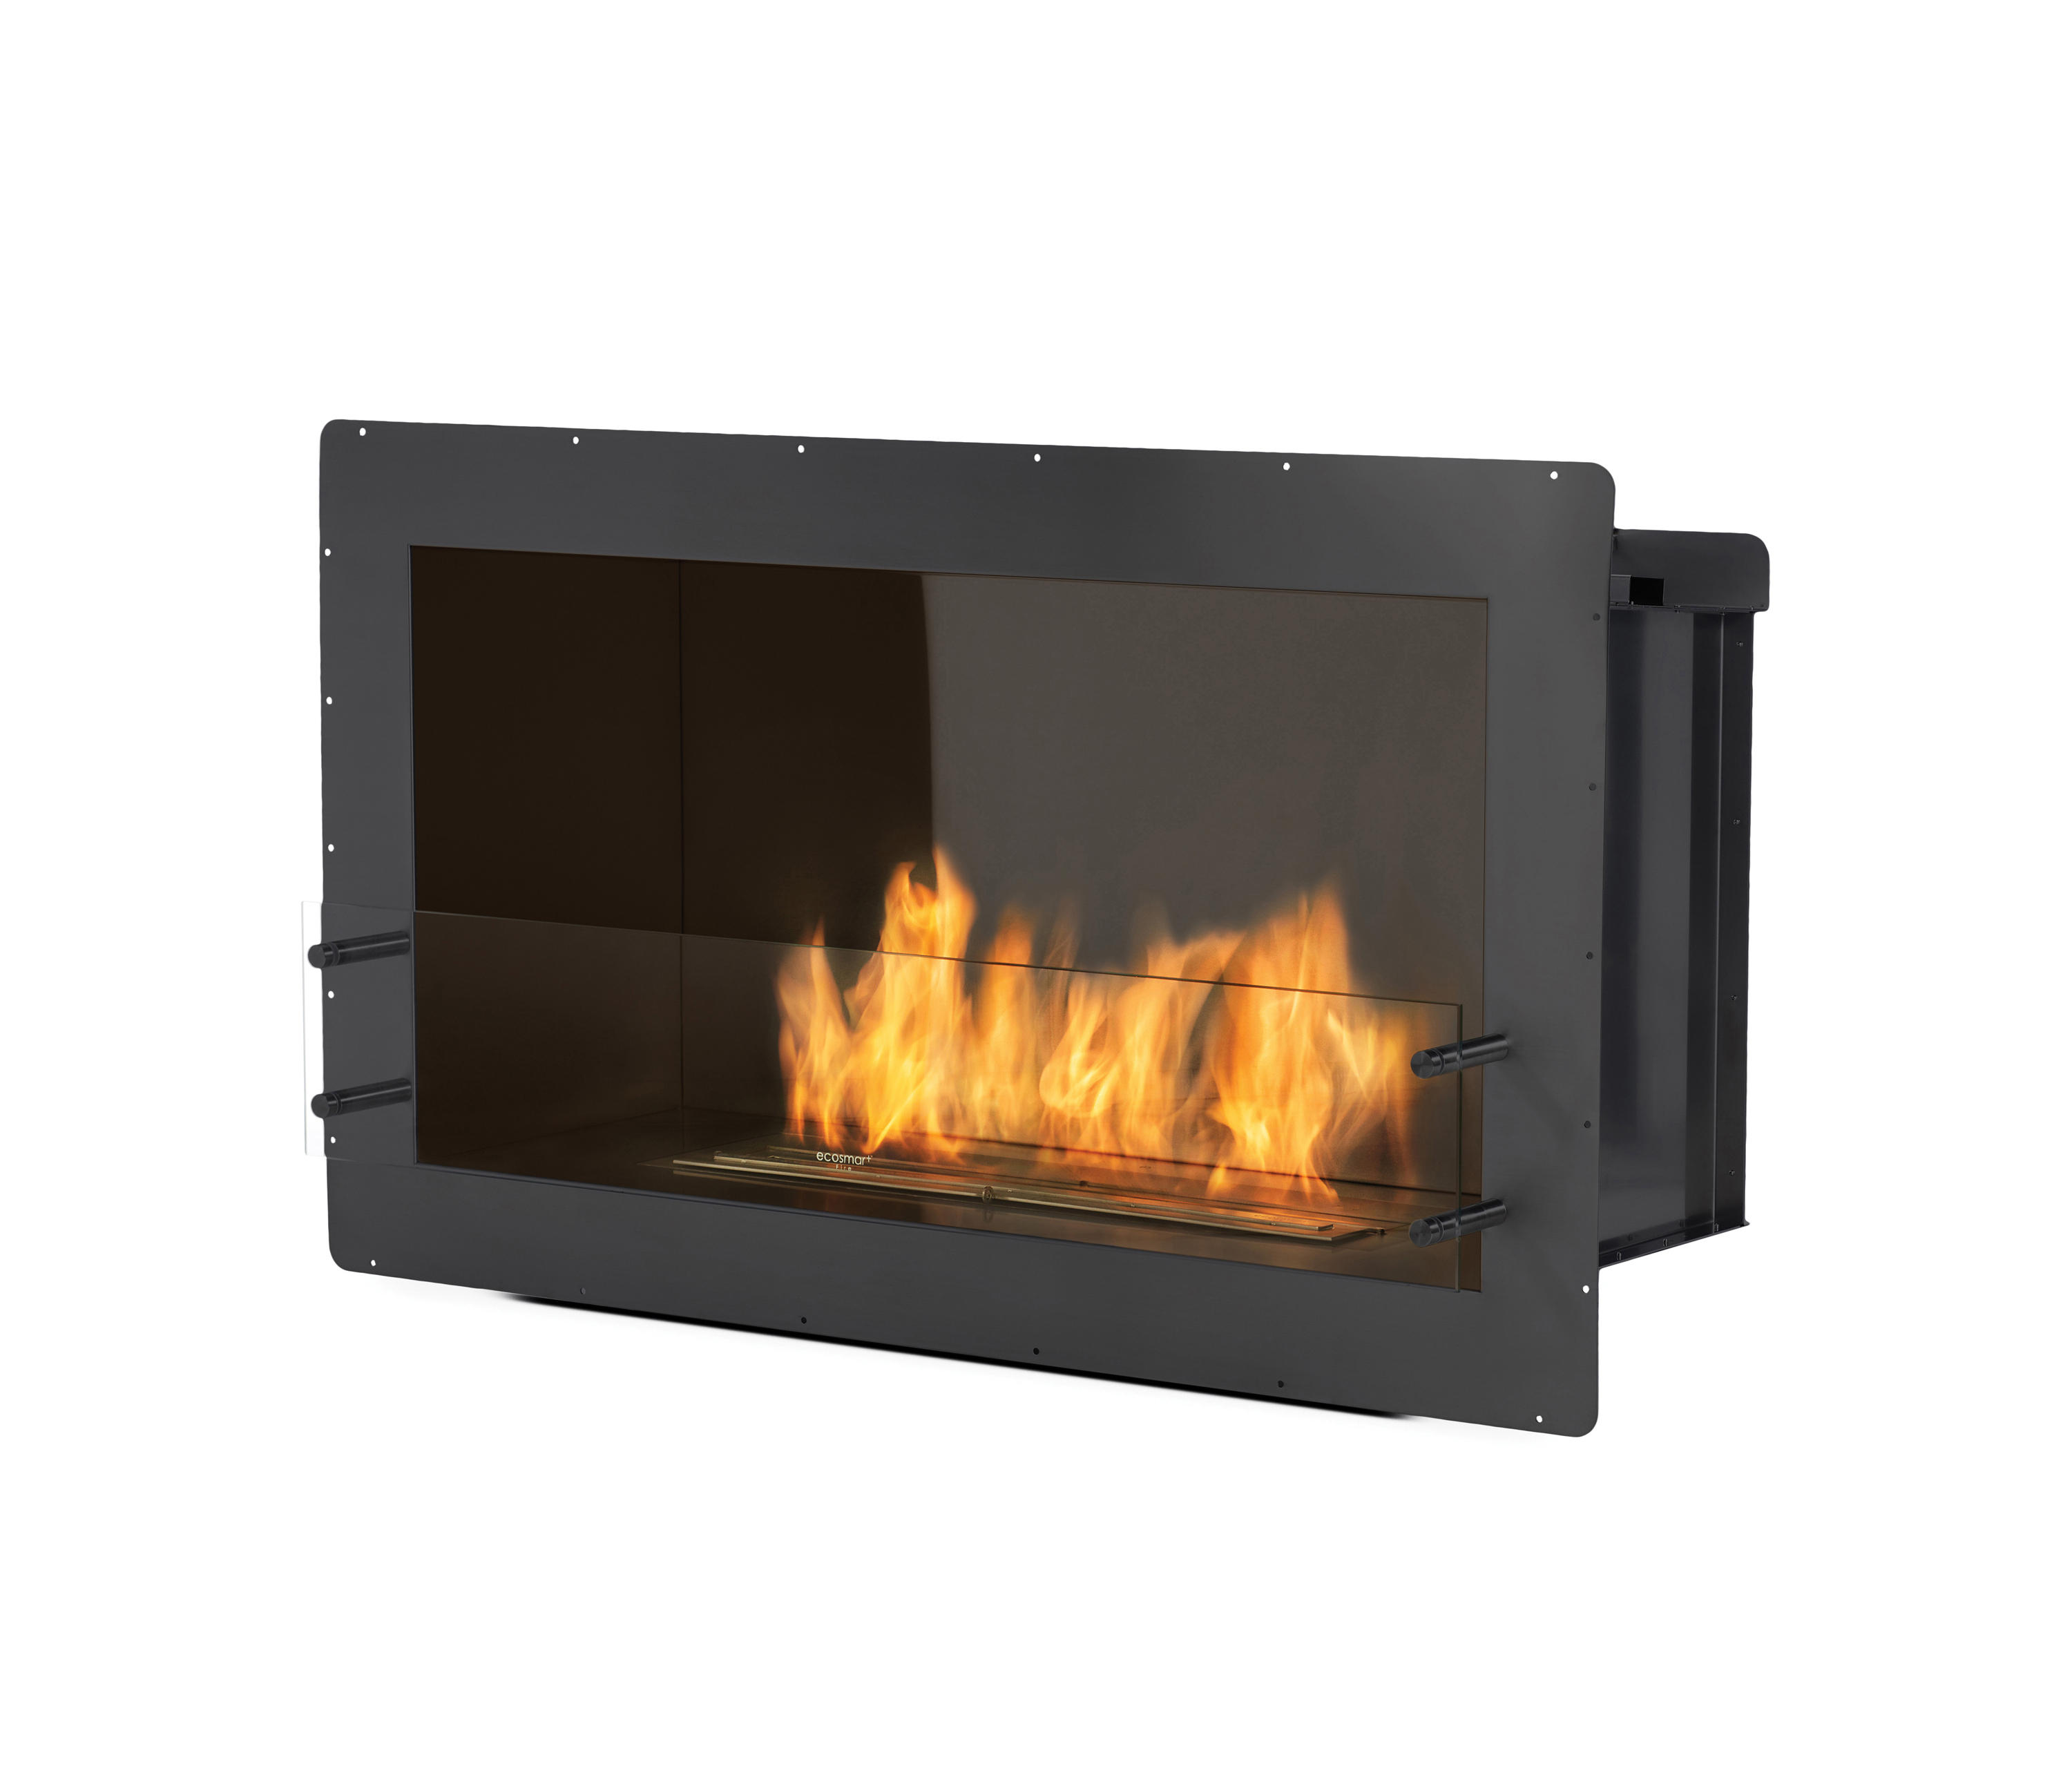 weathered digital infrared hq wh hogan fireplace electric media silo edited prod white